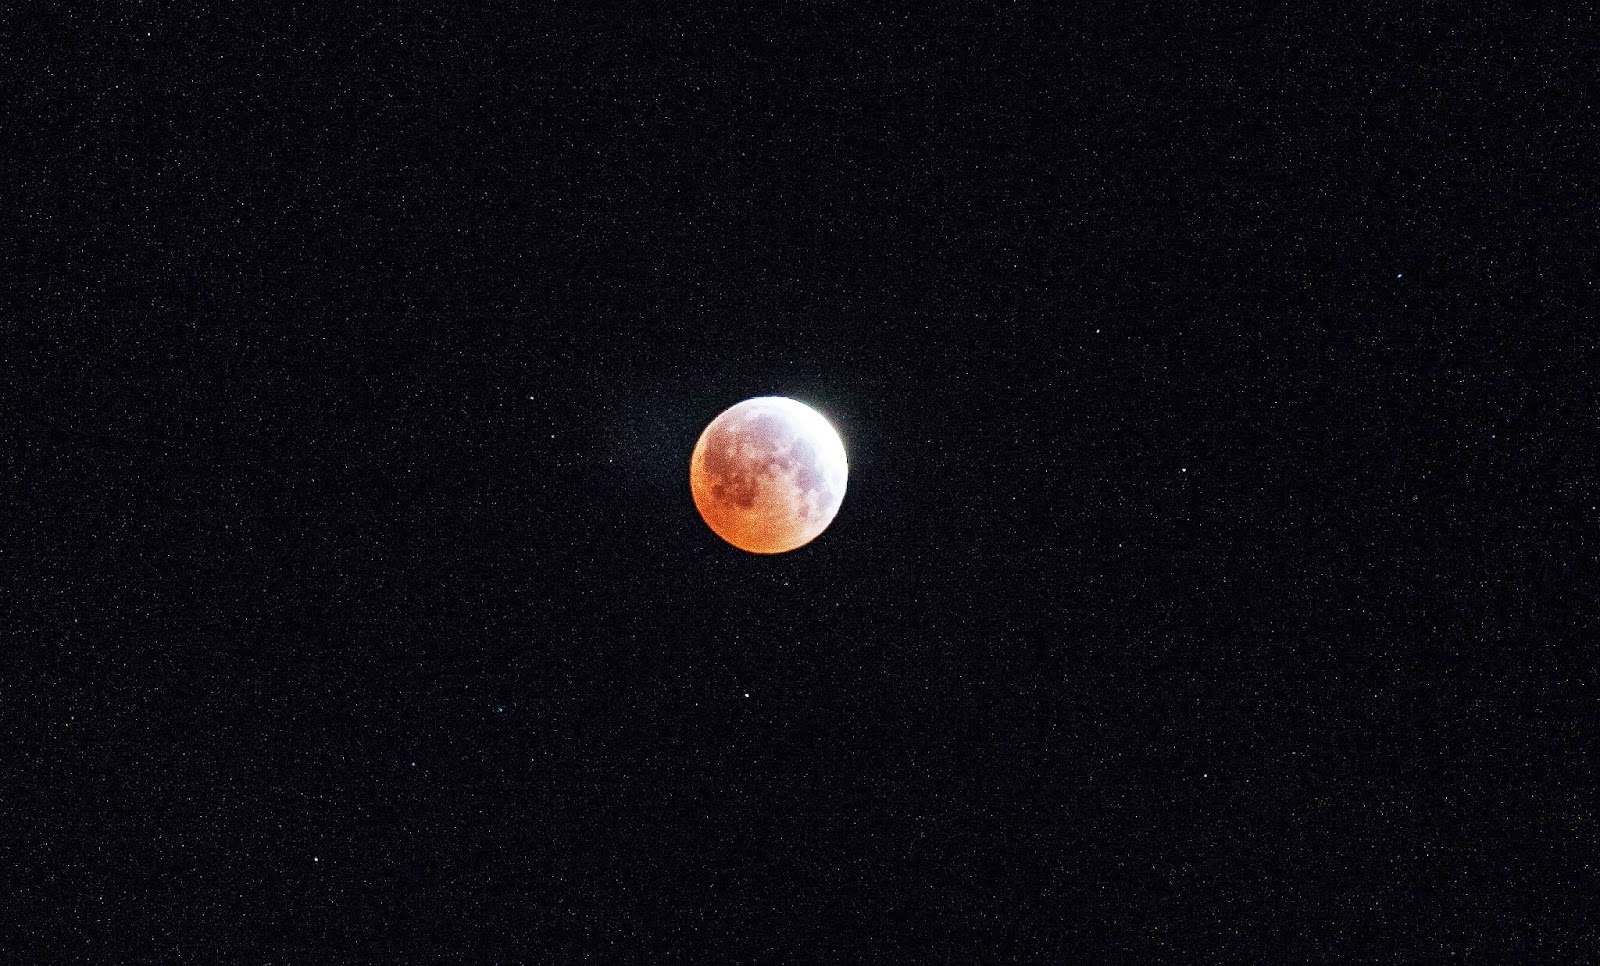 lunar eclipse photograph, sky photograph, night sky photograph, moon photograph, Sarah Venema, Colorado photographer